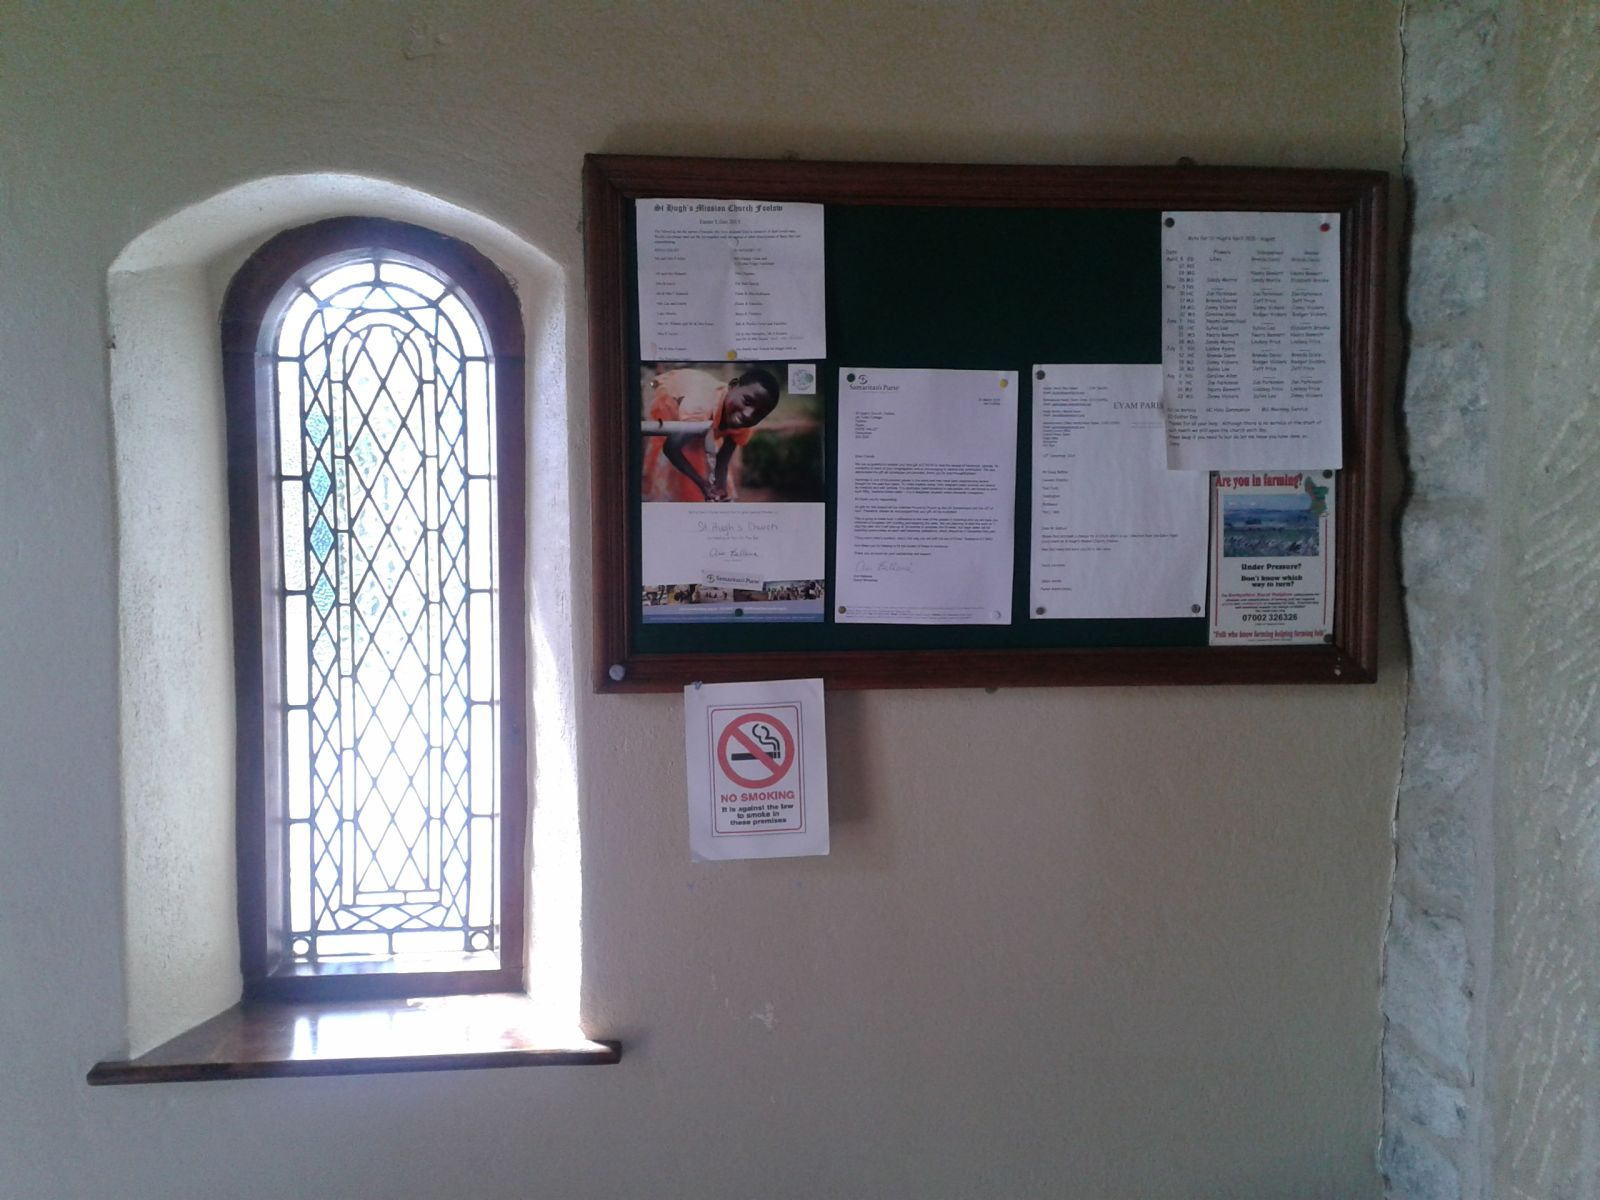 Bad example of a church notice board